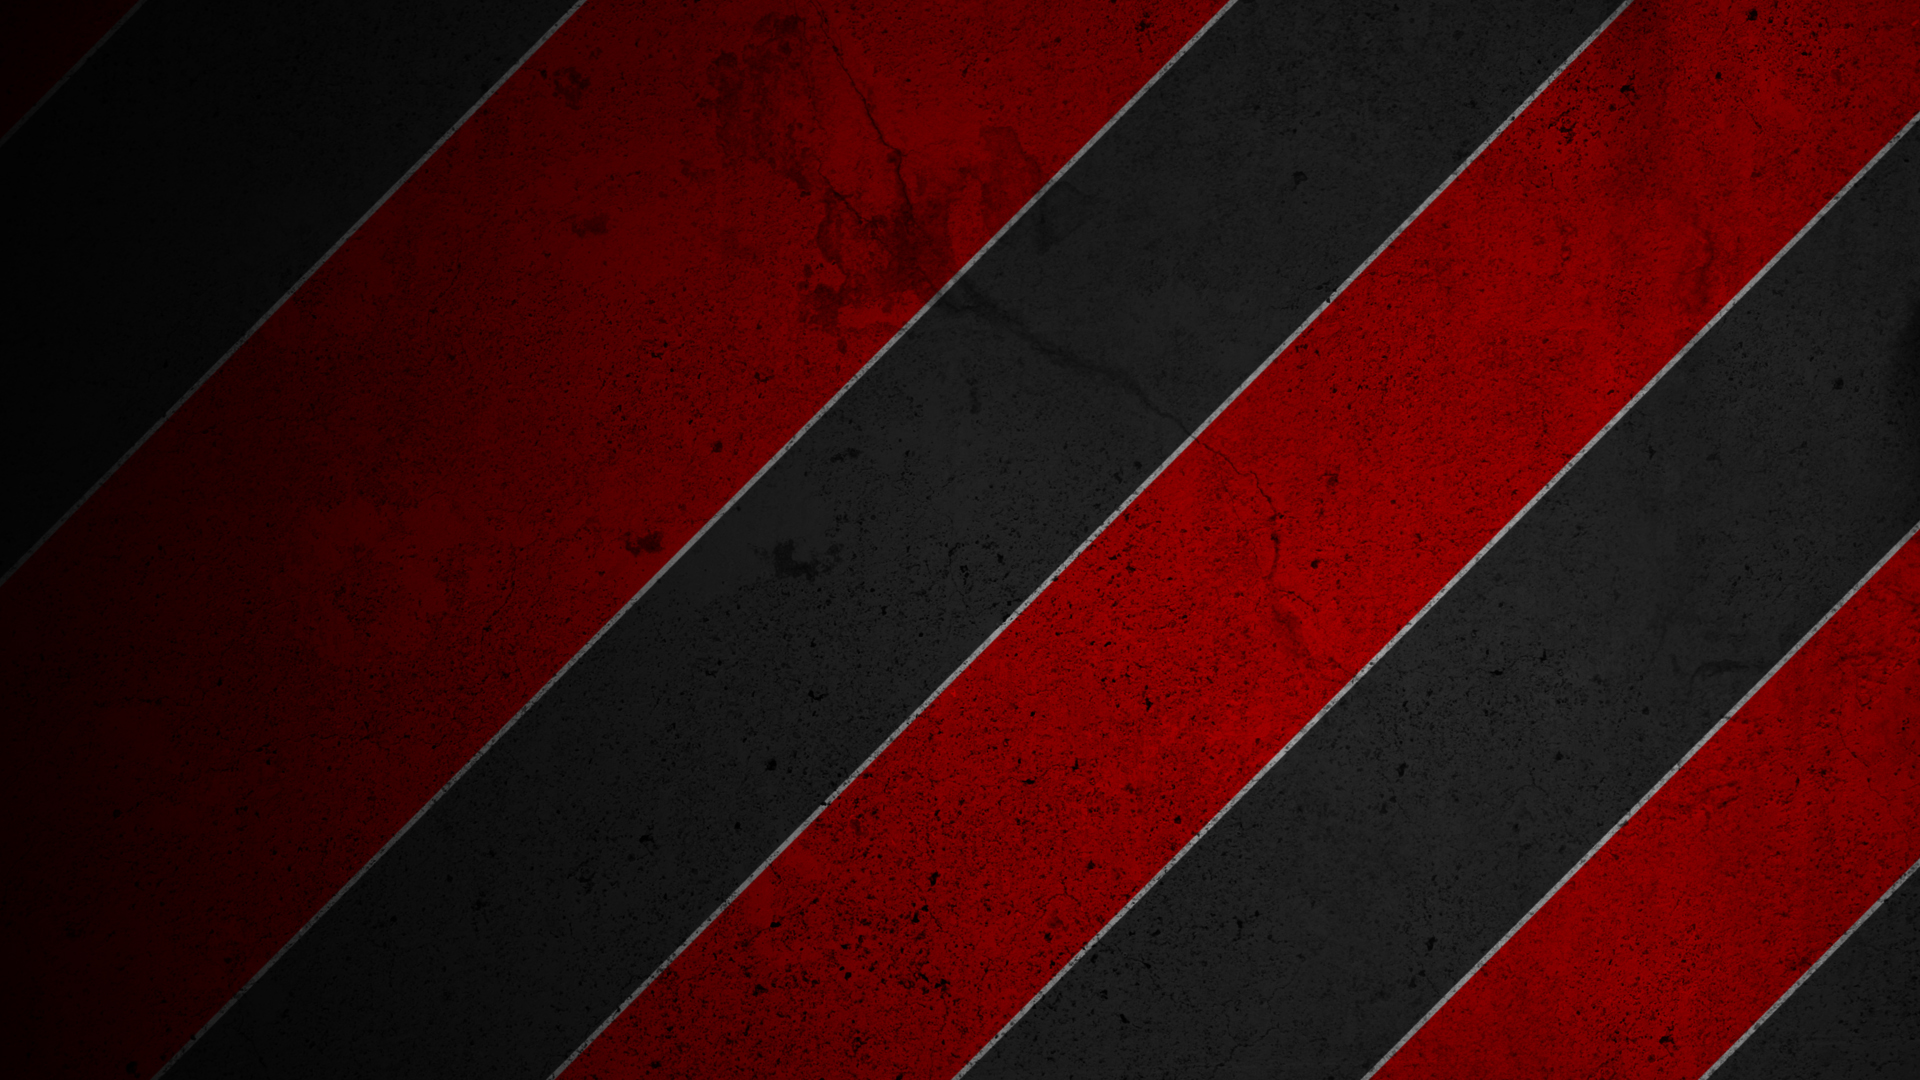 Red And Black Wallpaper 6 227529 High Definition Wallpapers wallalay 1920x1080